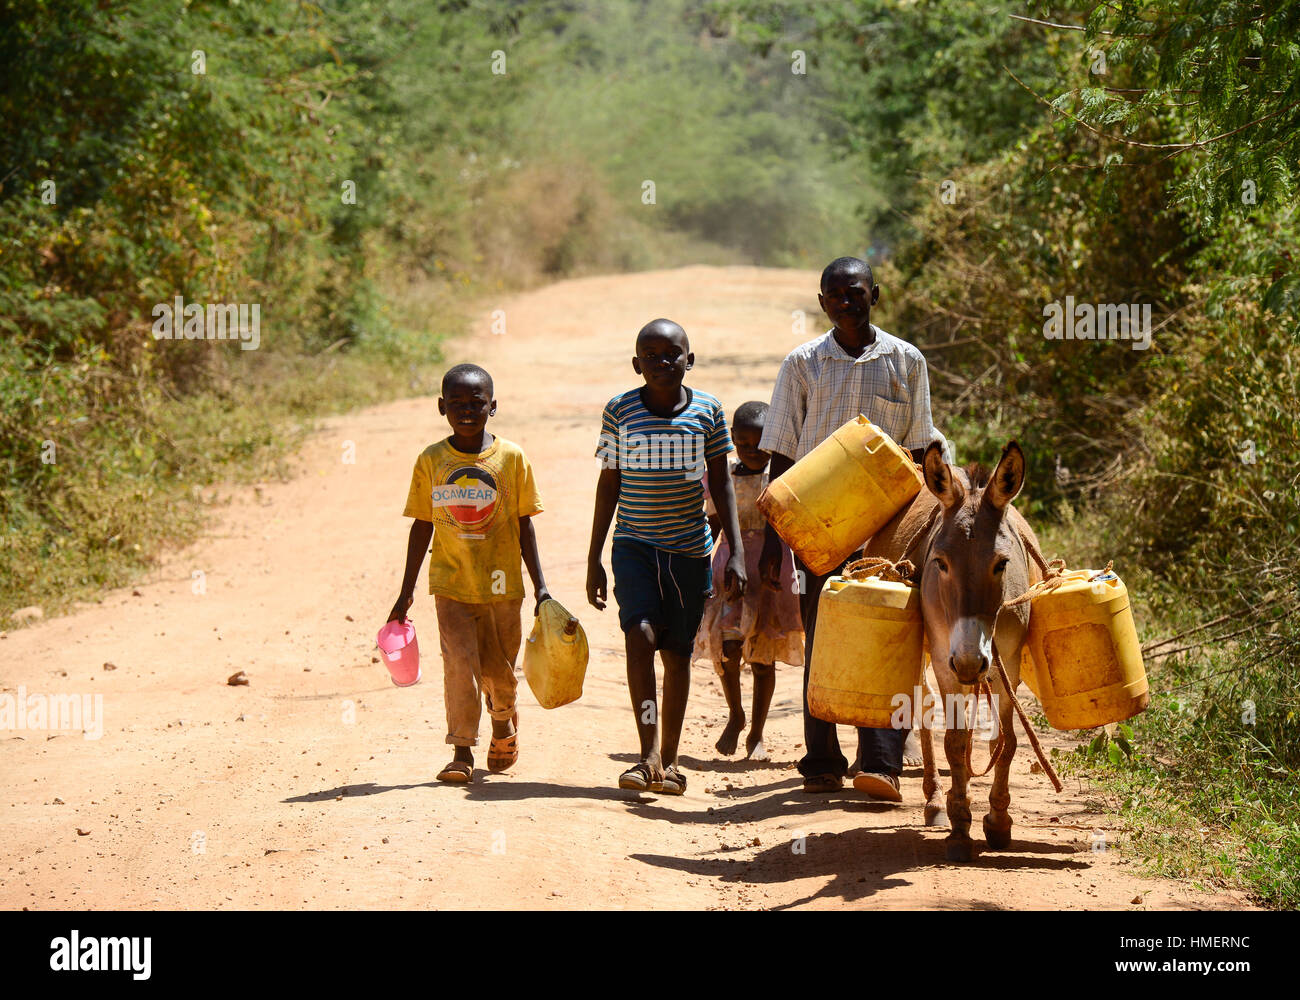 KENIA, Mount Kenya East , extreme drought due to lack of rain has caused massive water problems, villager transport - Stock Image